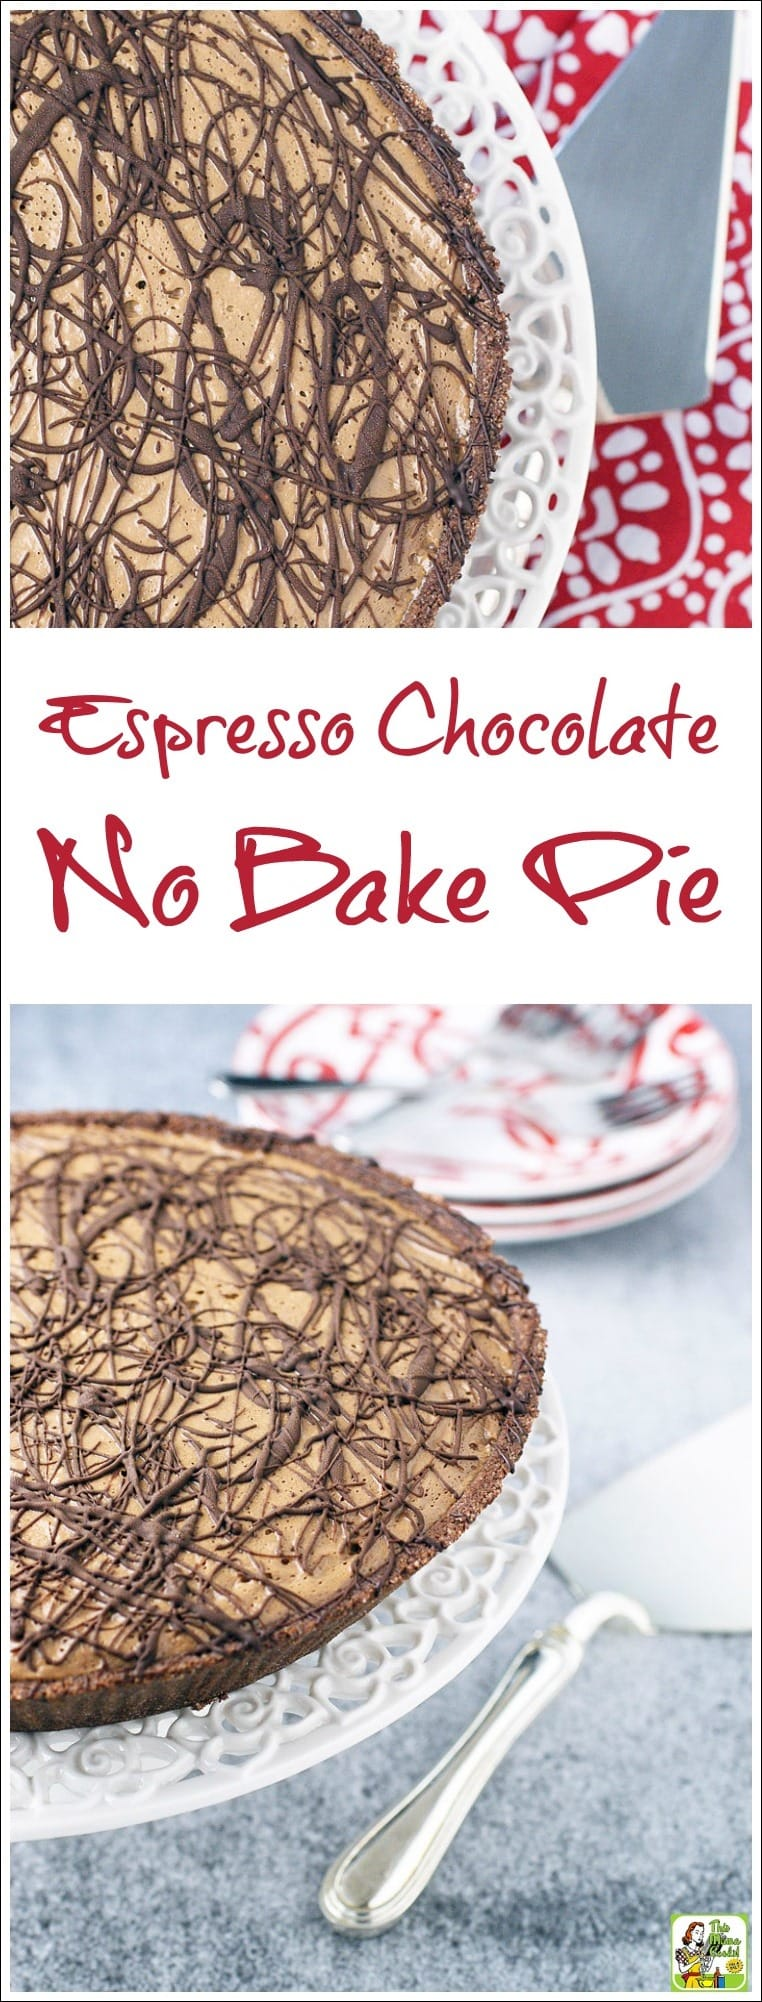 Espresso Chocolate No Bake Pie Recipe